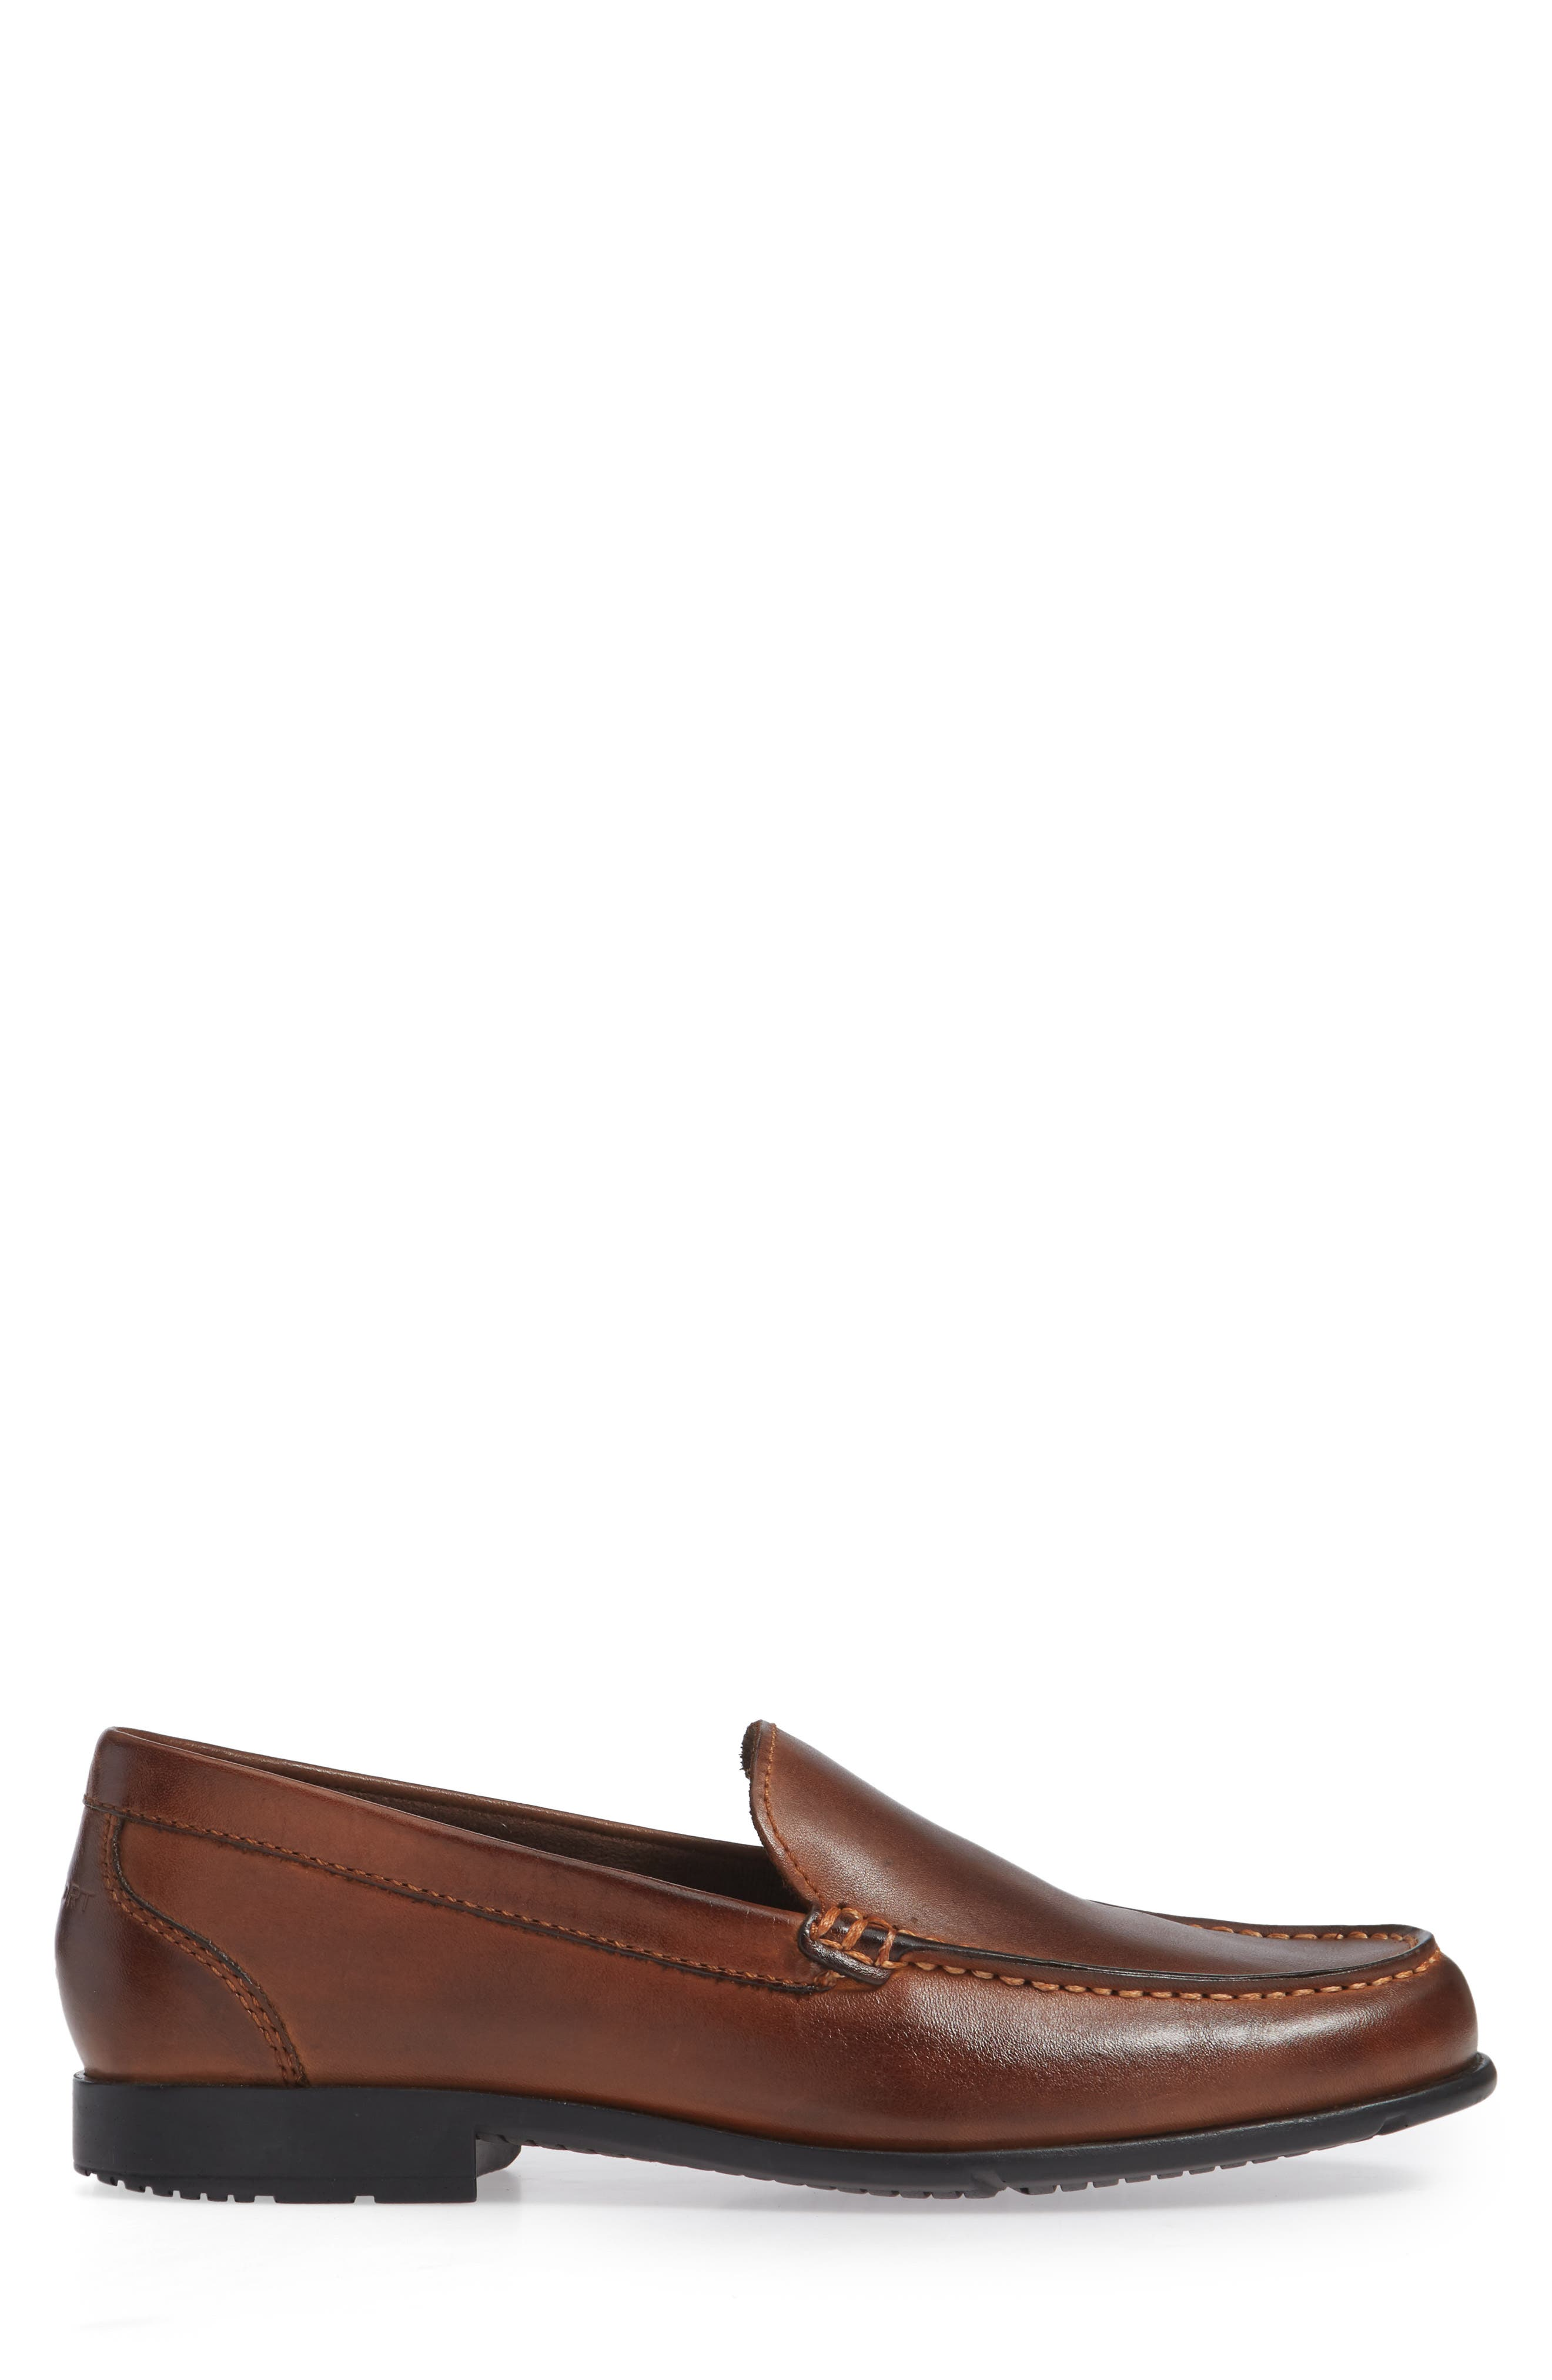 Classic Venetian Loafer,                             Alternate thumbnail 3, color,                             DARK BROWN LEATHER